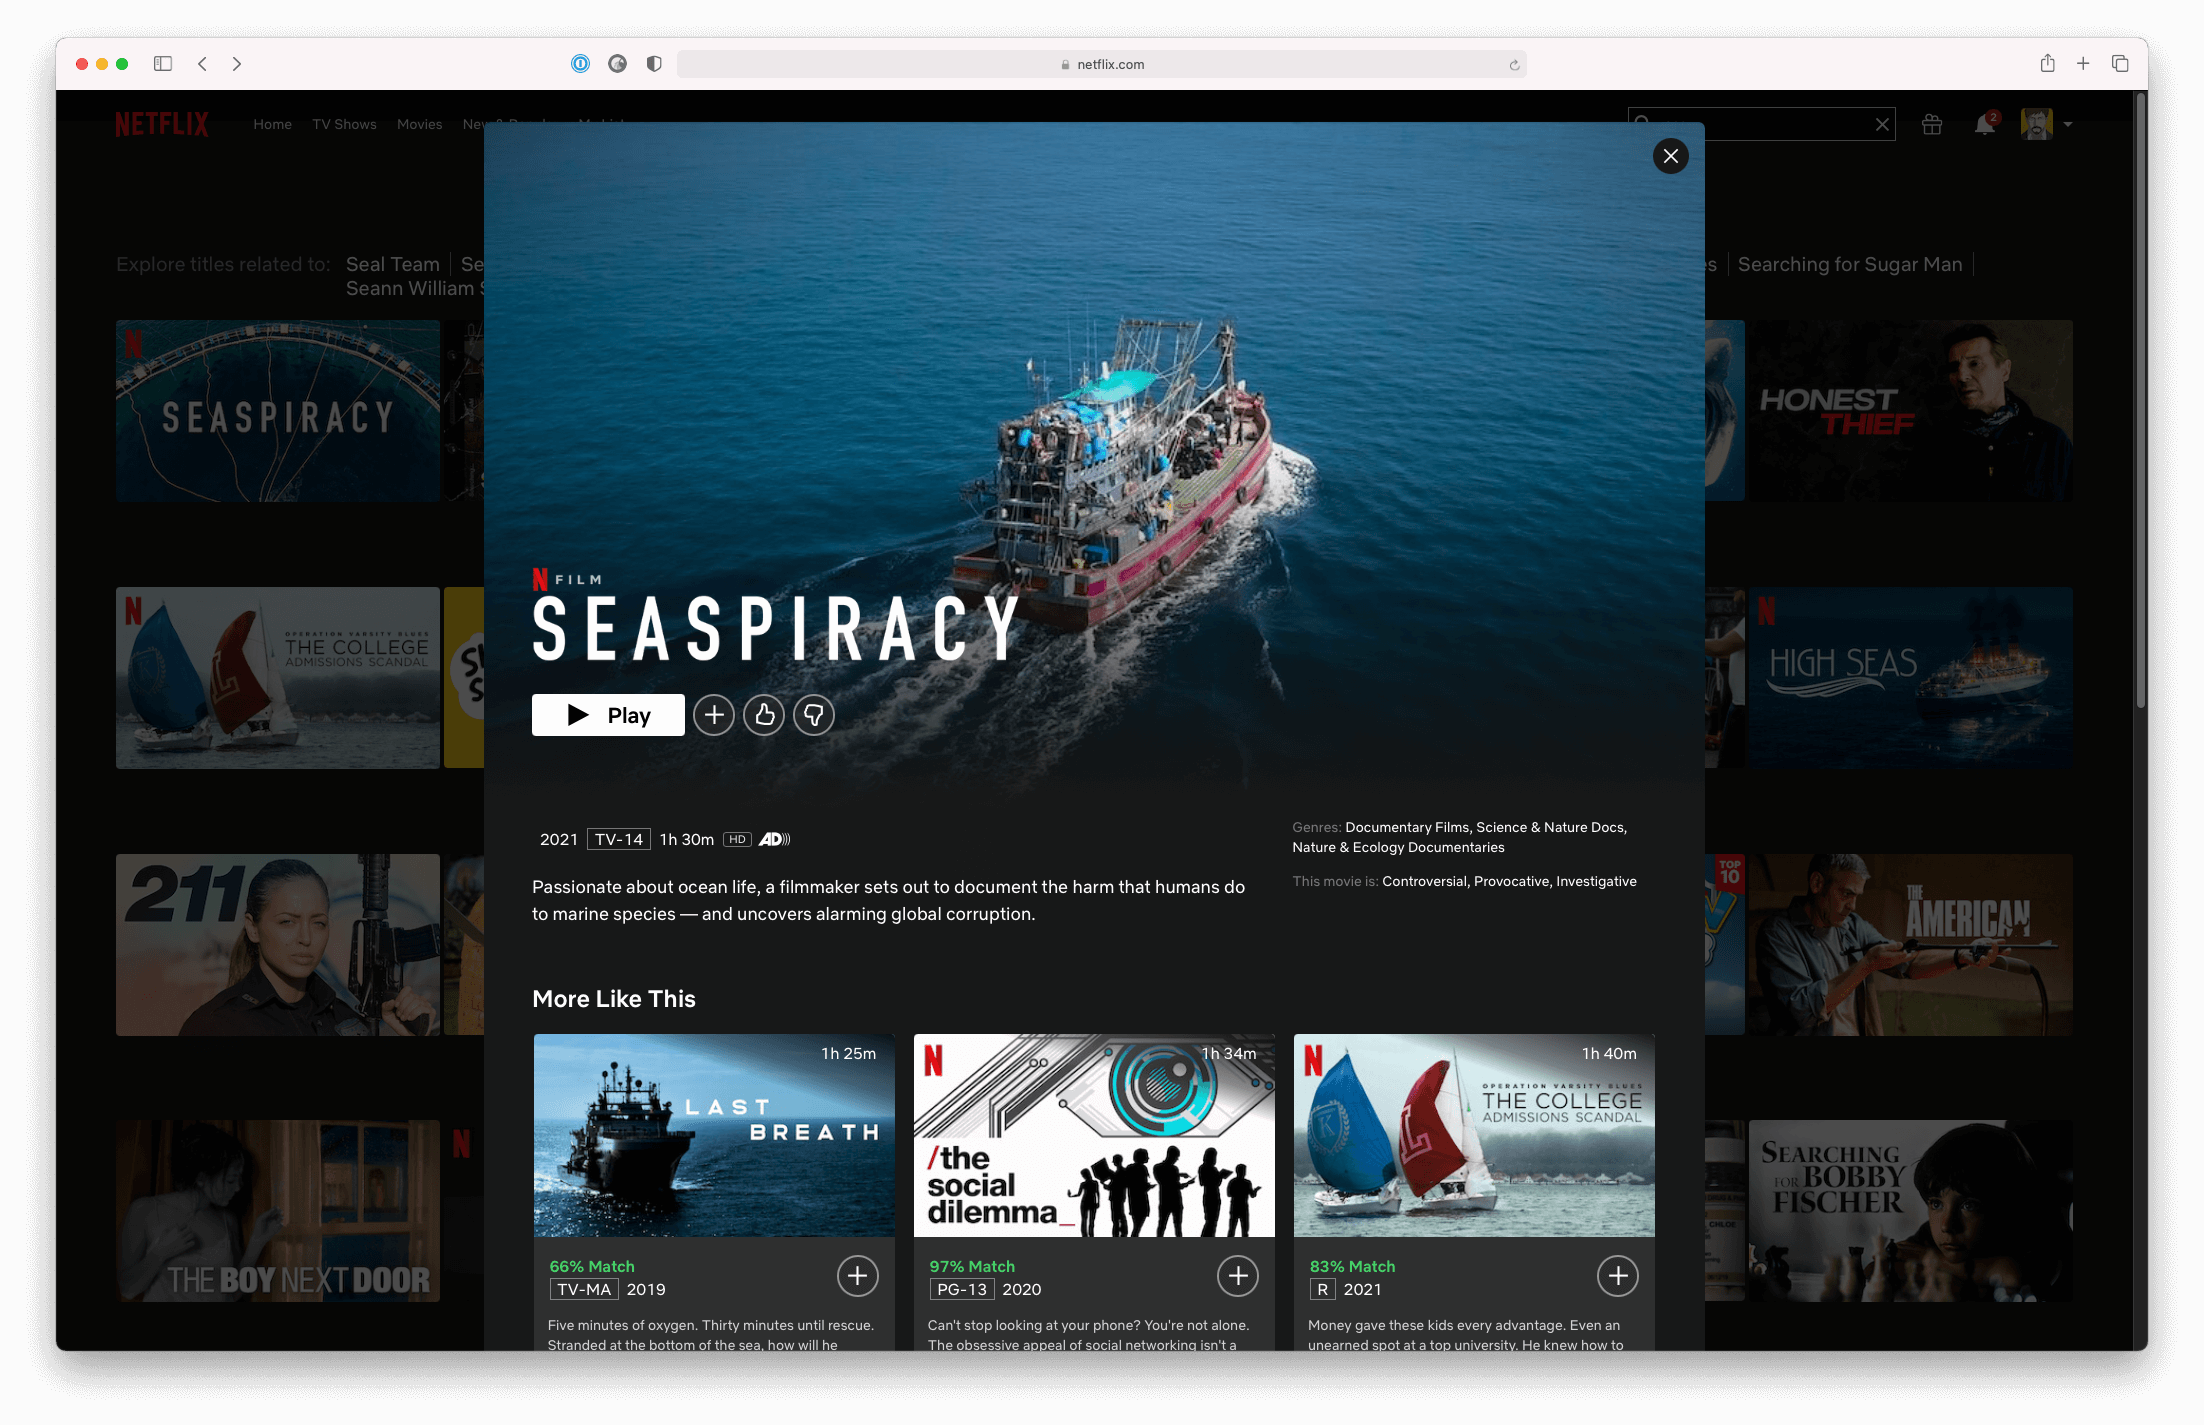 A screenshot of Seaspiracy on Netflix